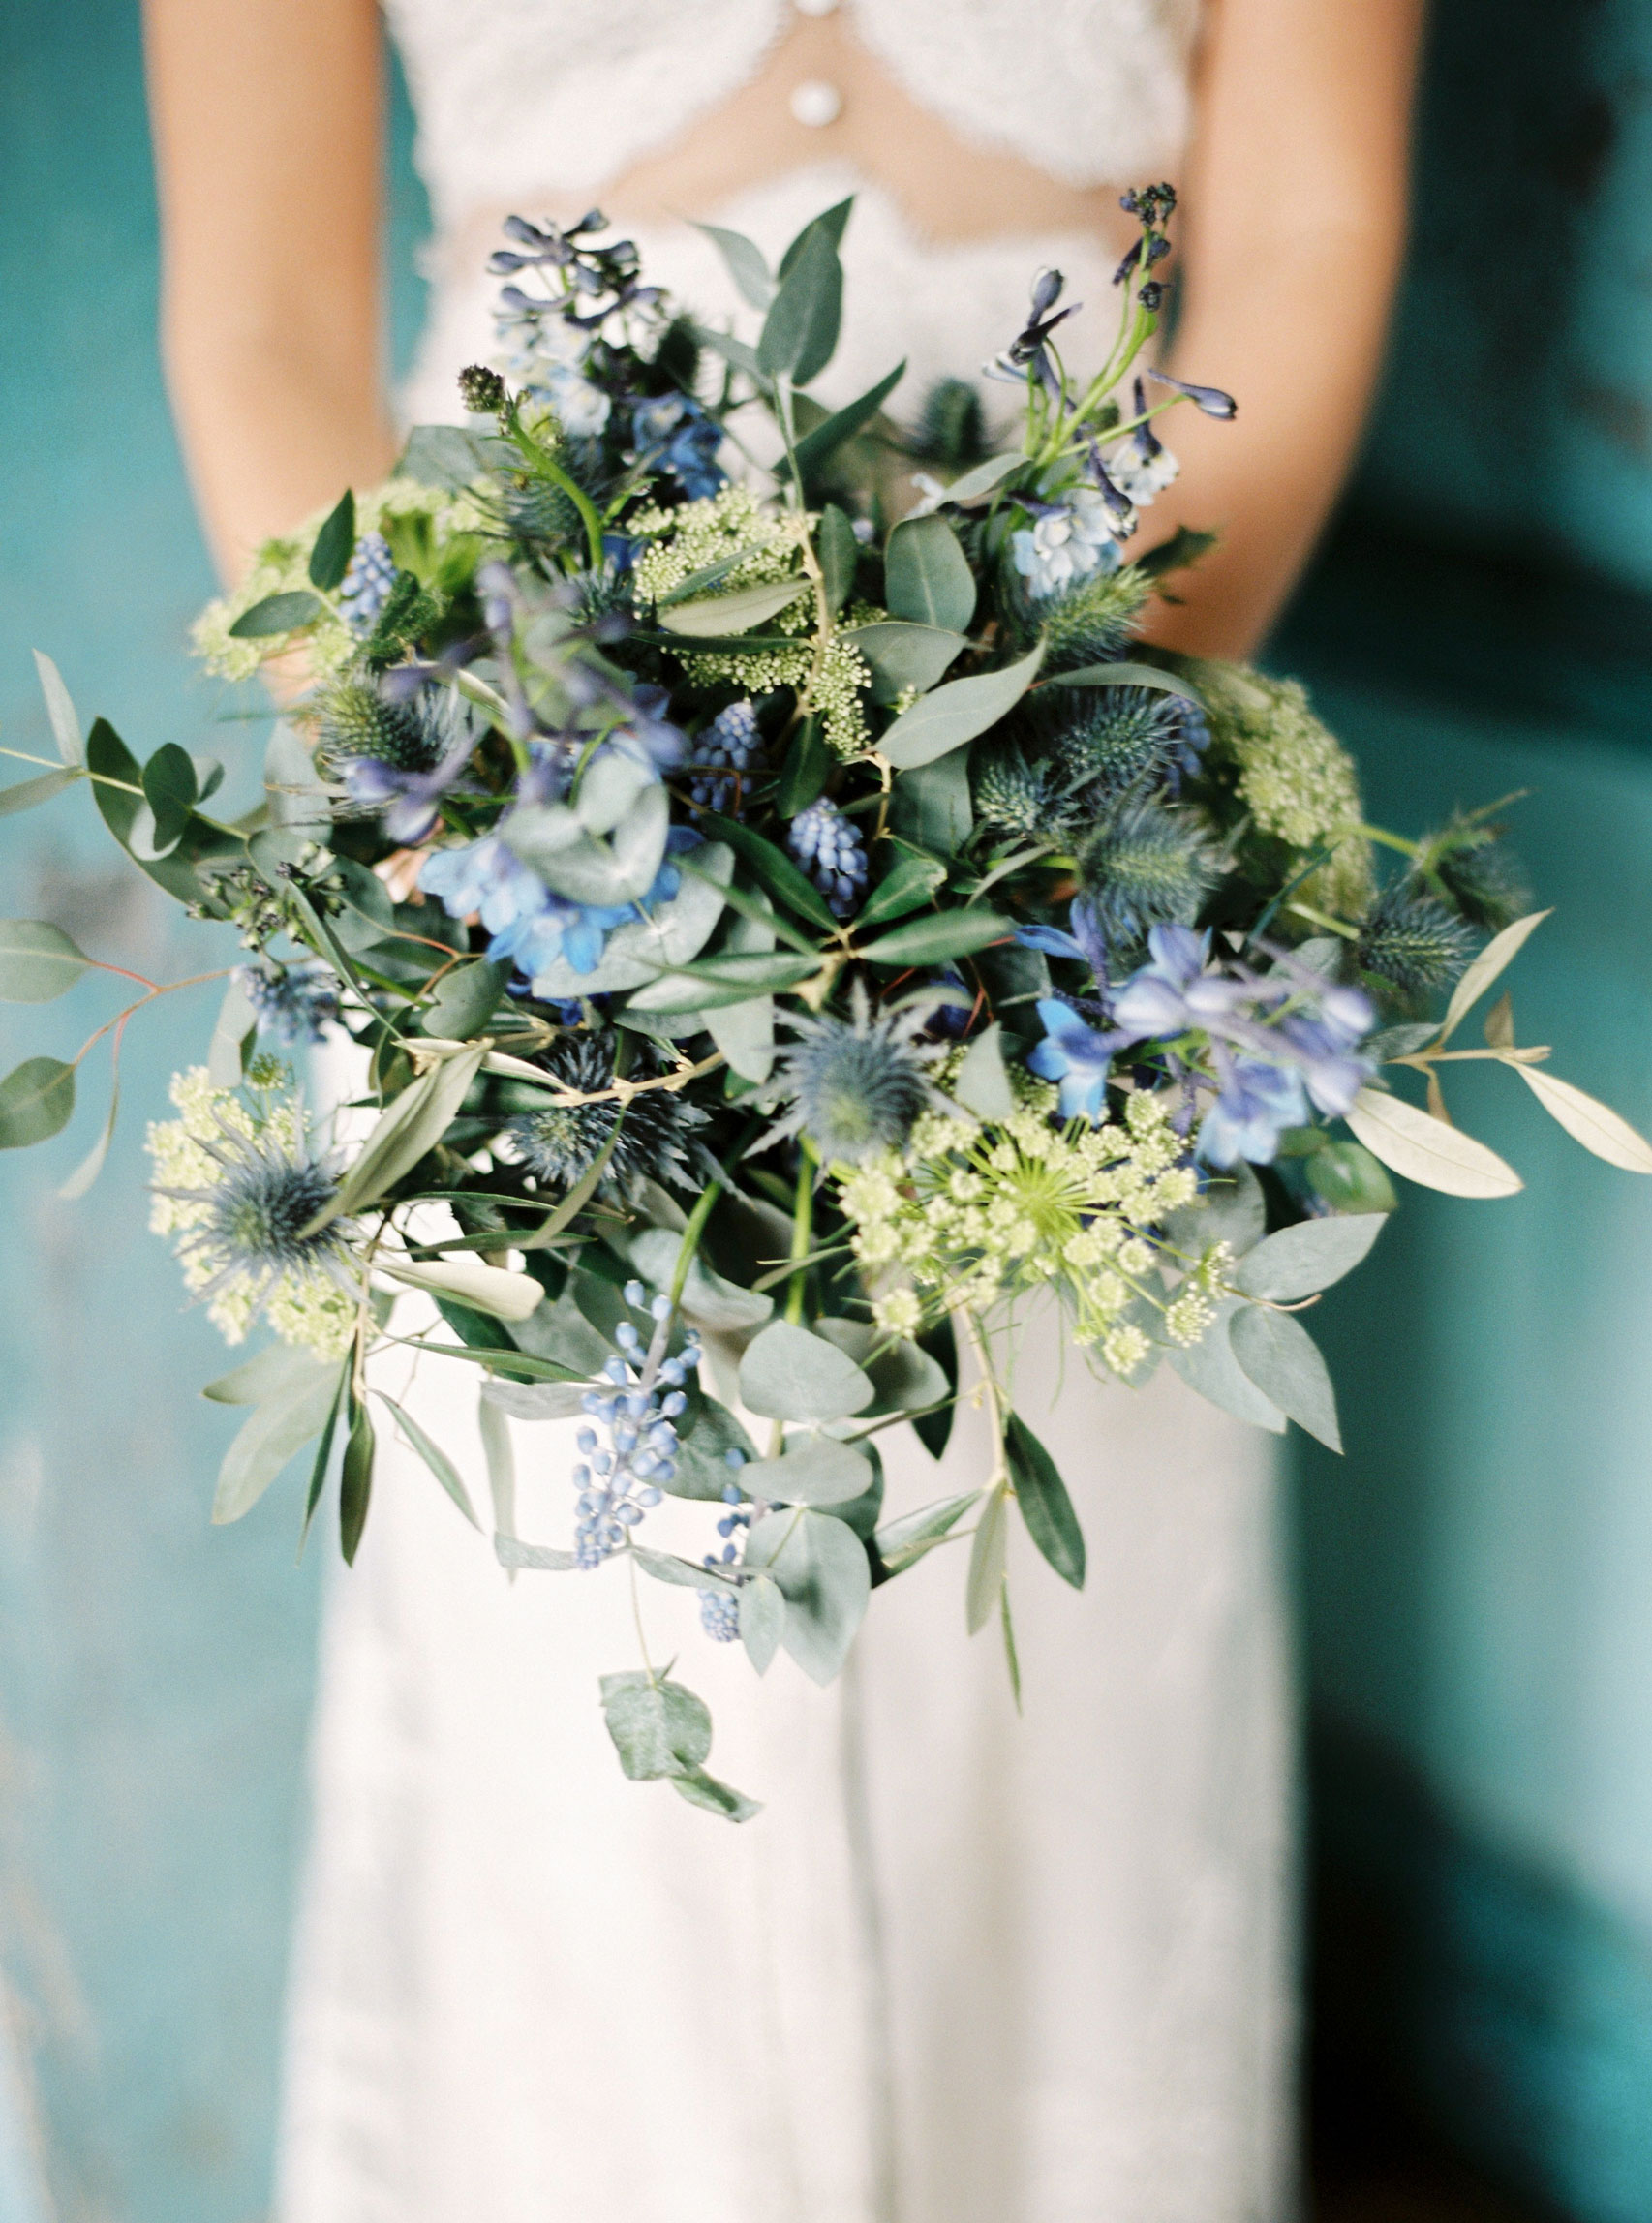 sarah-harper-floral-design-luxury-wedding-florist-flowers-oxfordshite-cotsworlds-gallery-Lucy_Davenport_Photography_Paradise-013